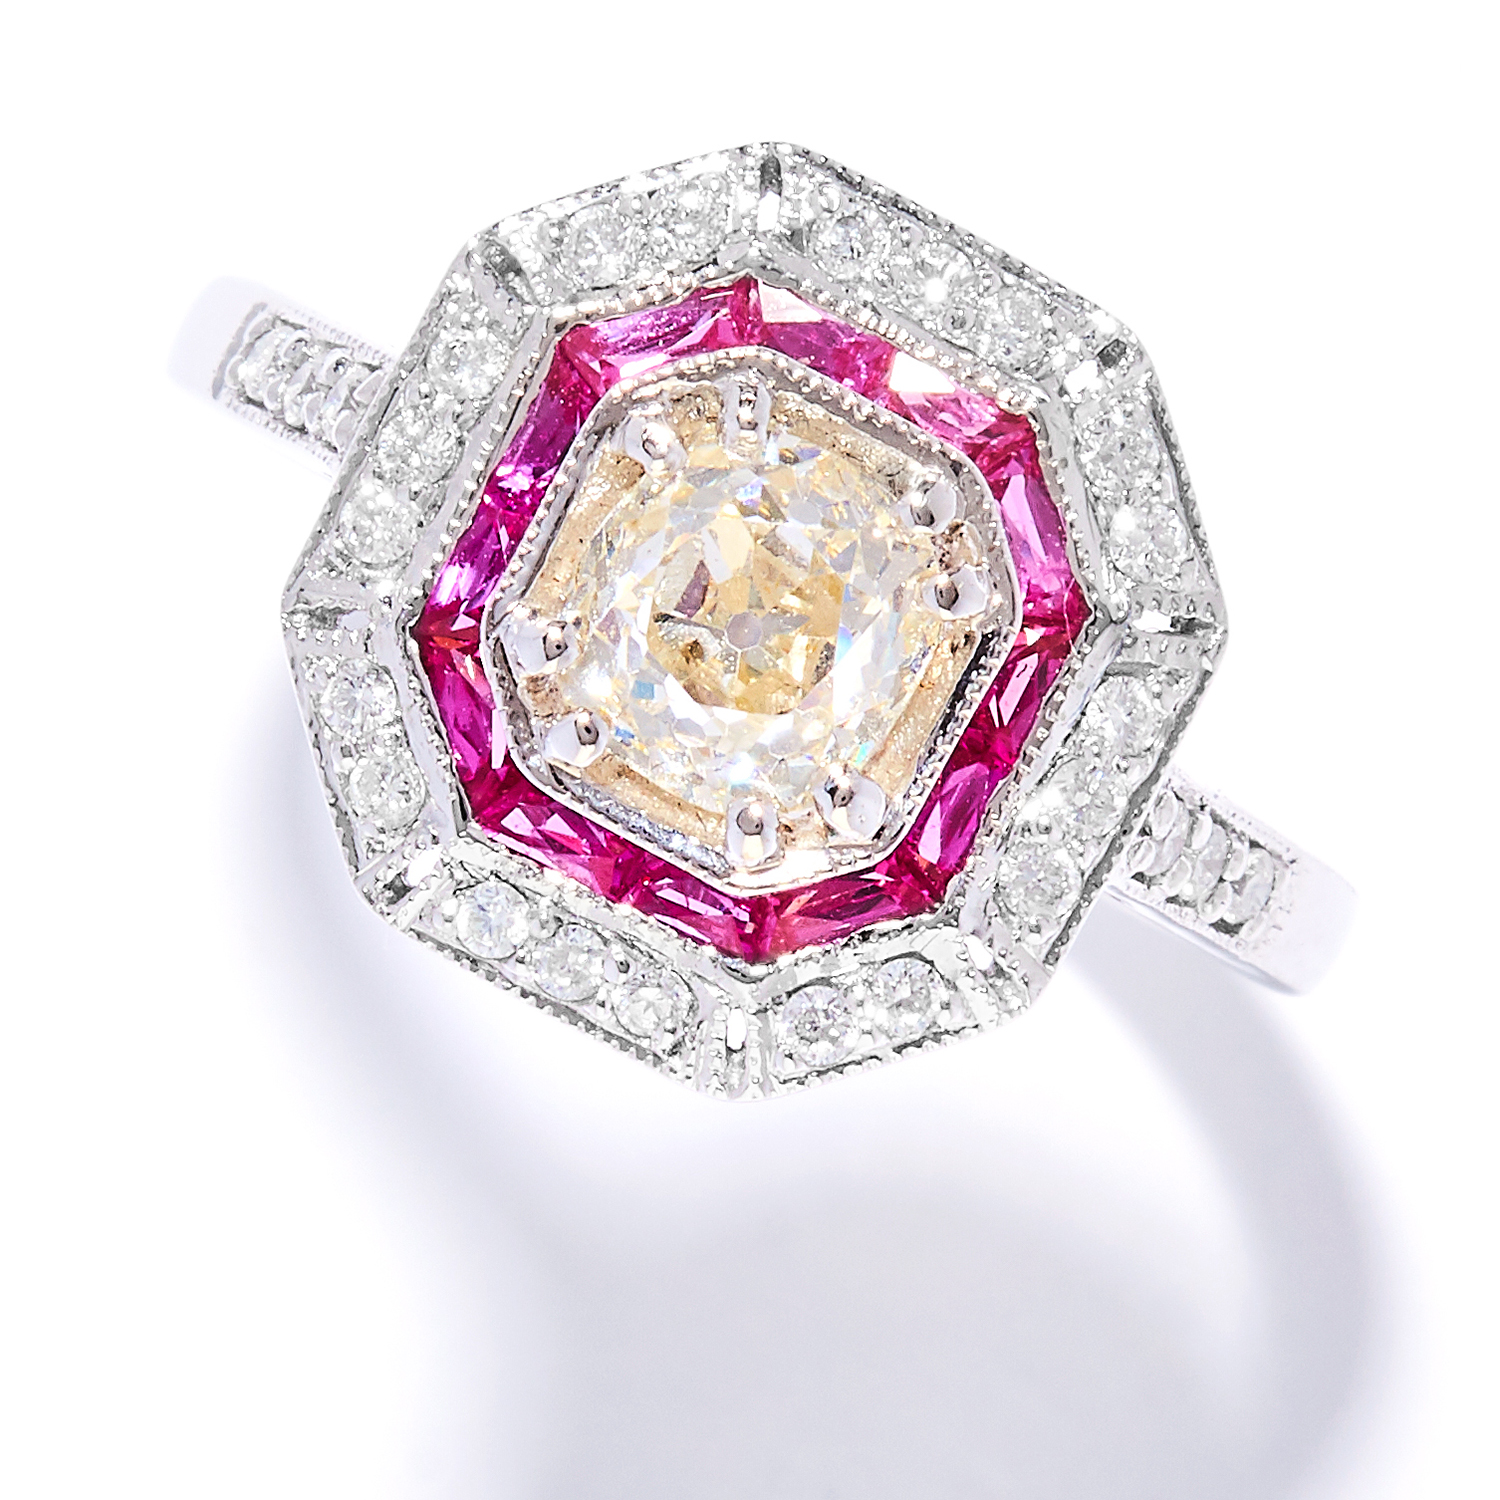 DIAMOND AND RUBY DRESS RING in 18ct white gold, in Art Deco design, set with an old cut diamond of